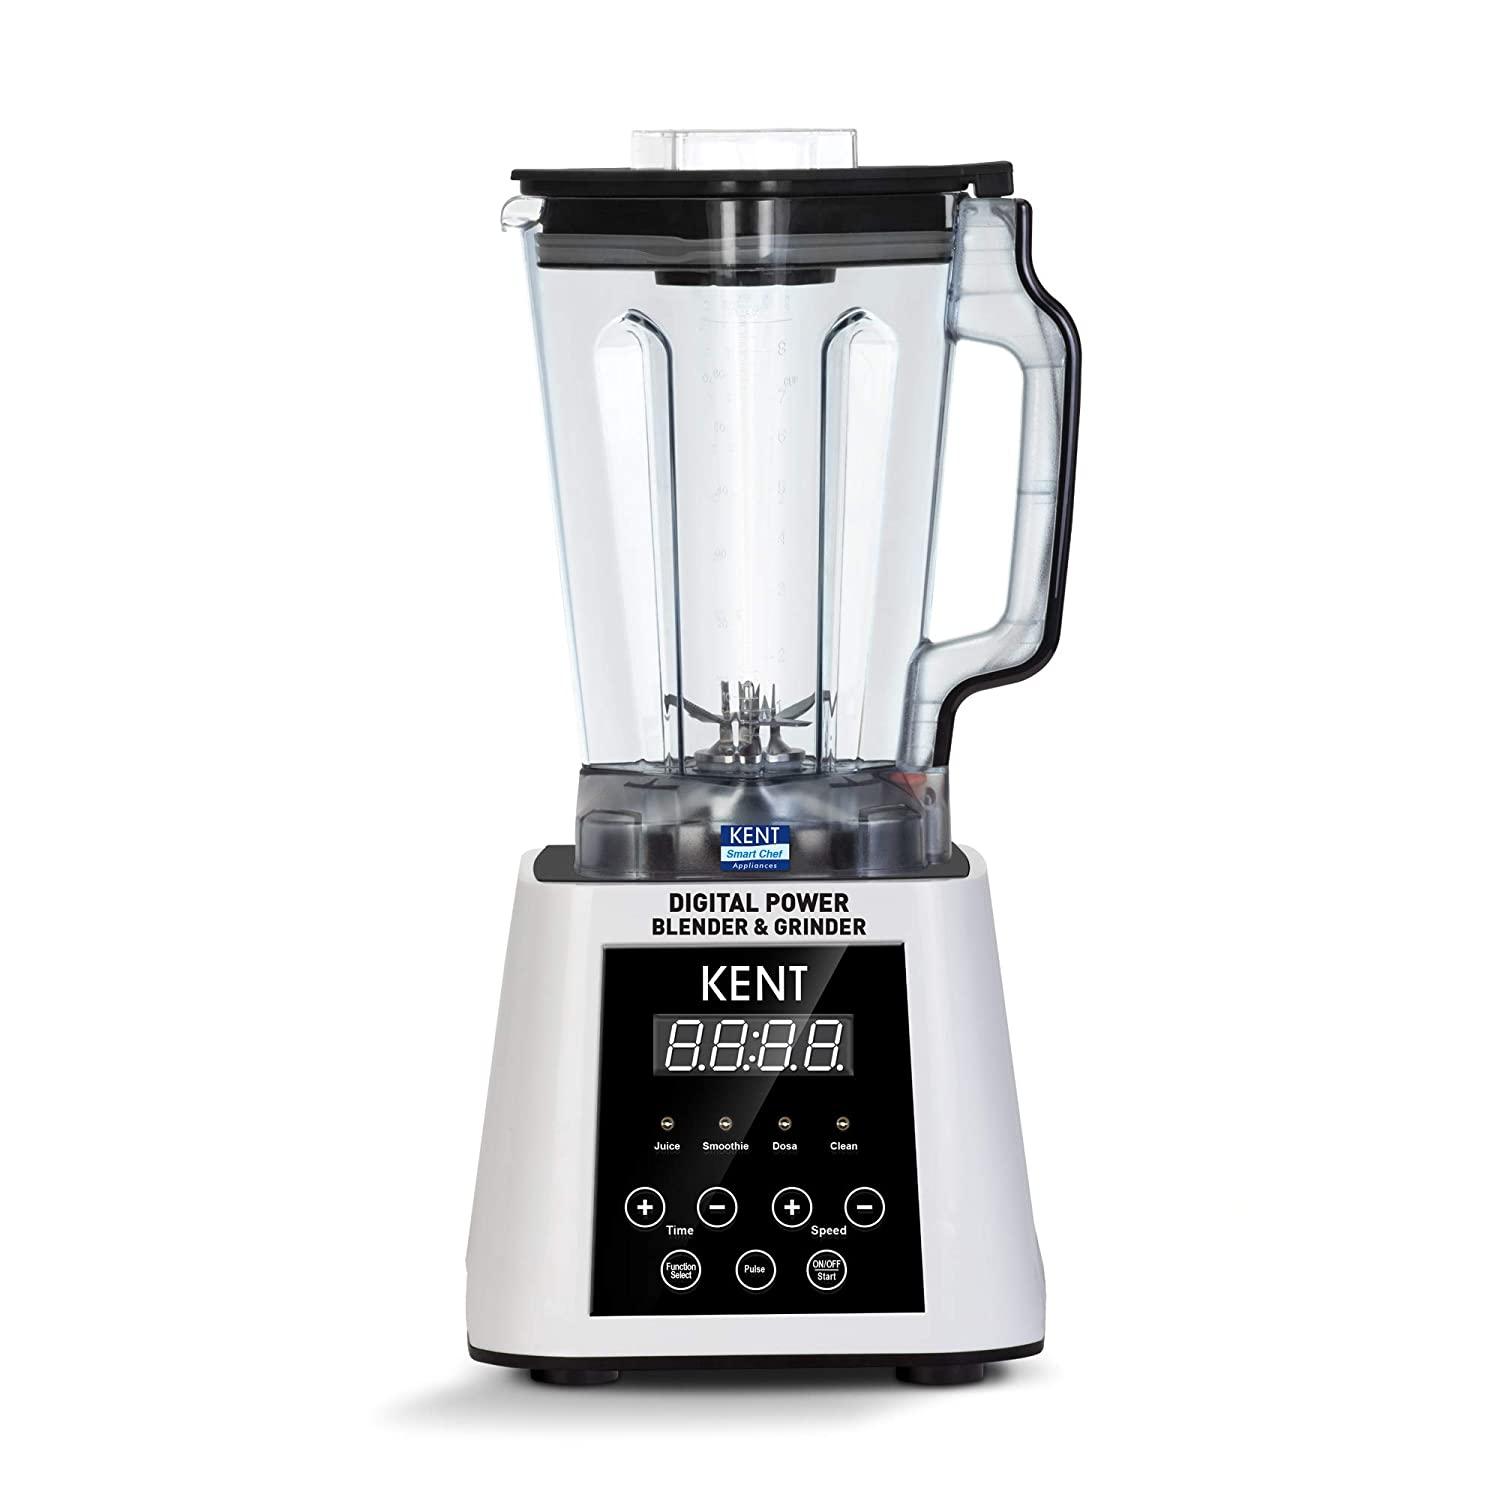 Refurbished Kent 16027 2500-Watt Digital Power Blender with Jar (White) kida.in